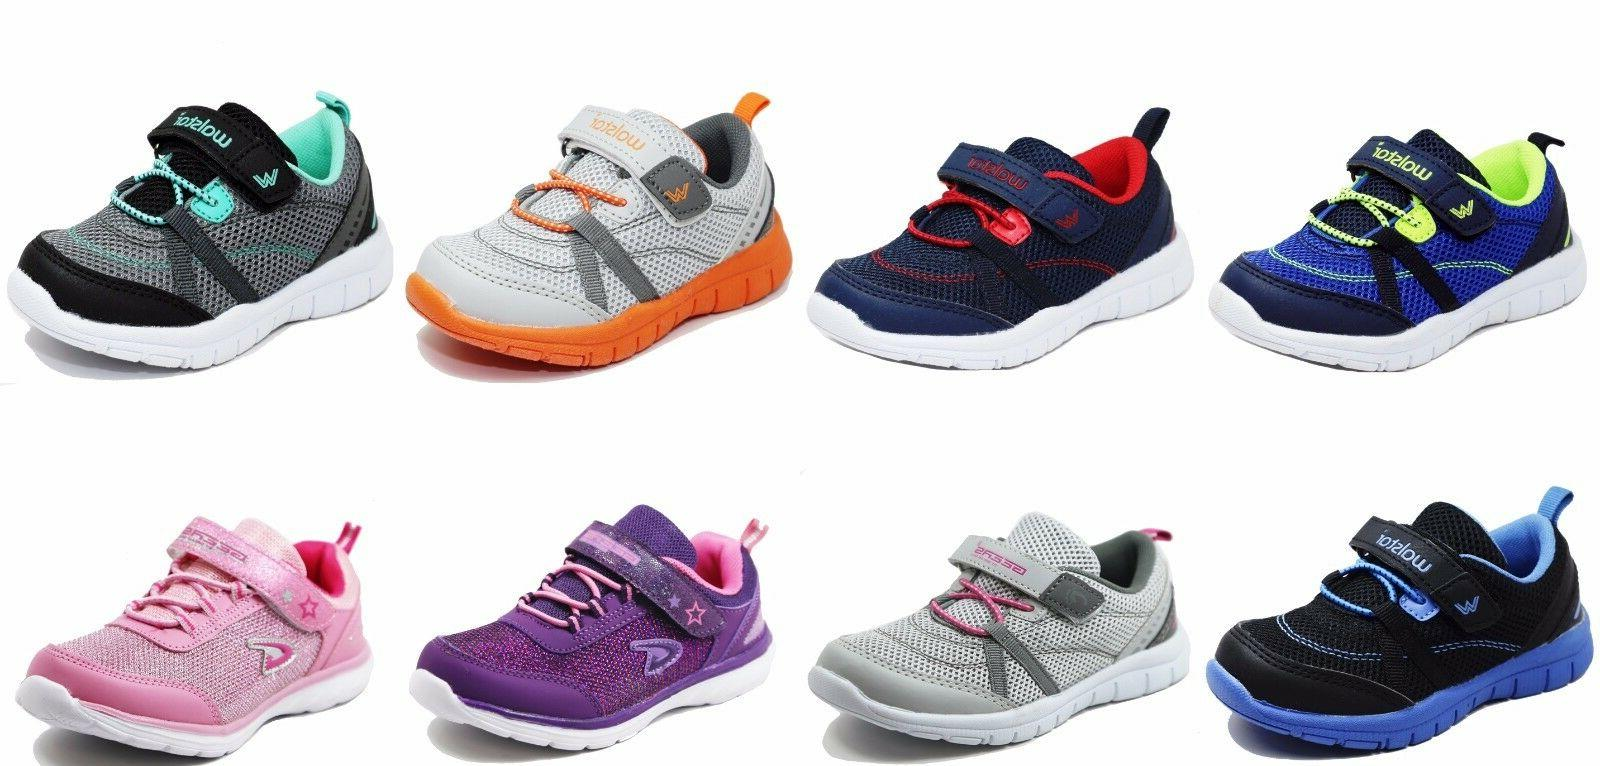 New Kids Sneakers Running shoes 5,6,7,8,9,10